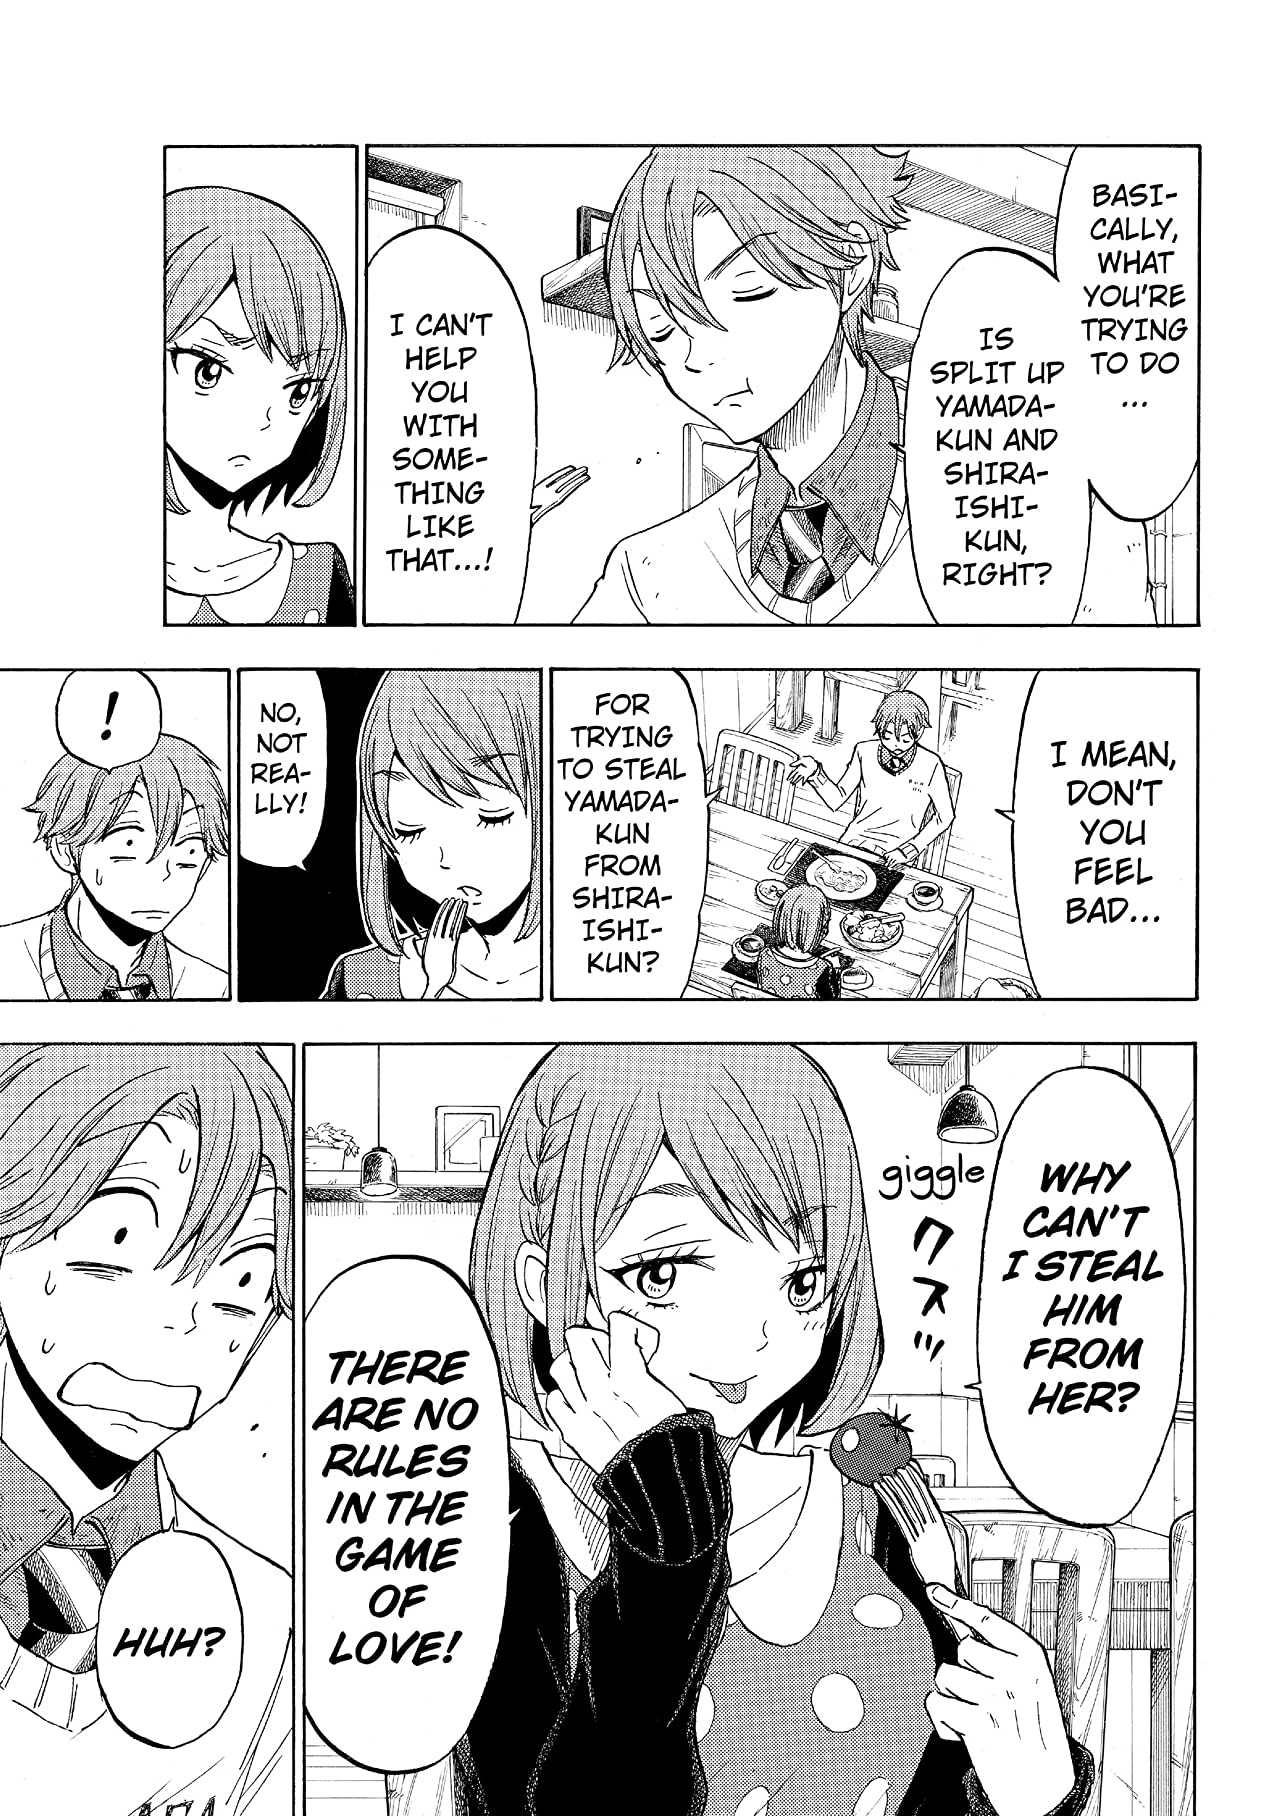 Yamada-kun and the Seven Witches #121